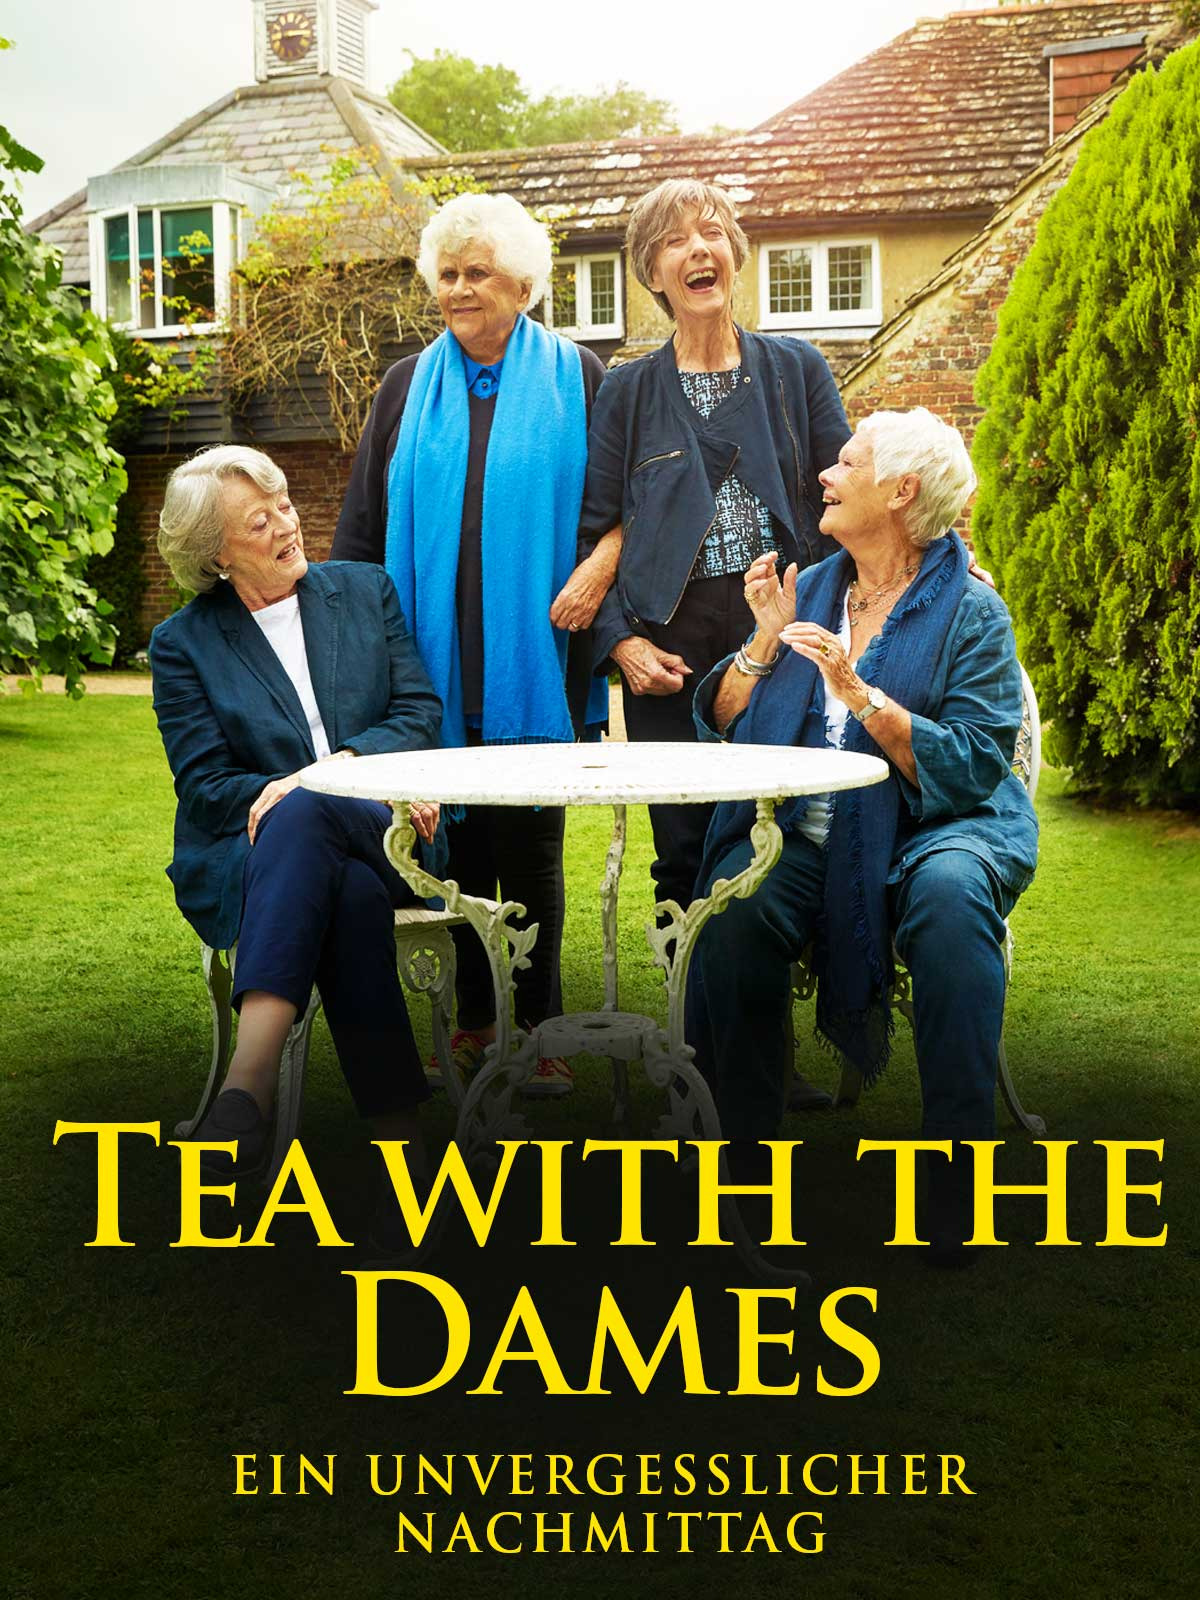 Tea With The Dames - Ein unvergesslicher Nachmittag